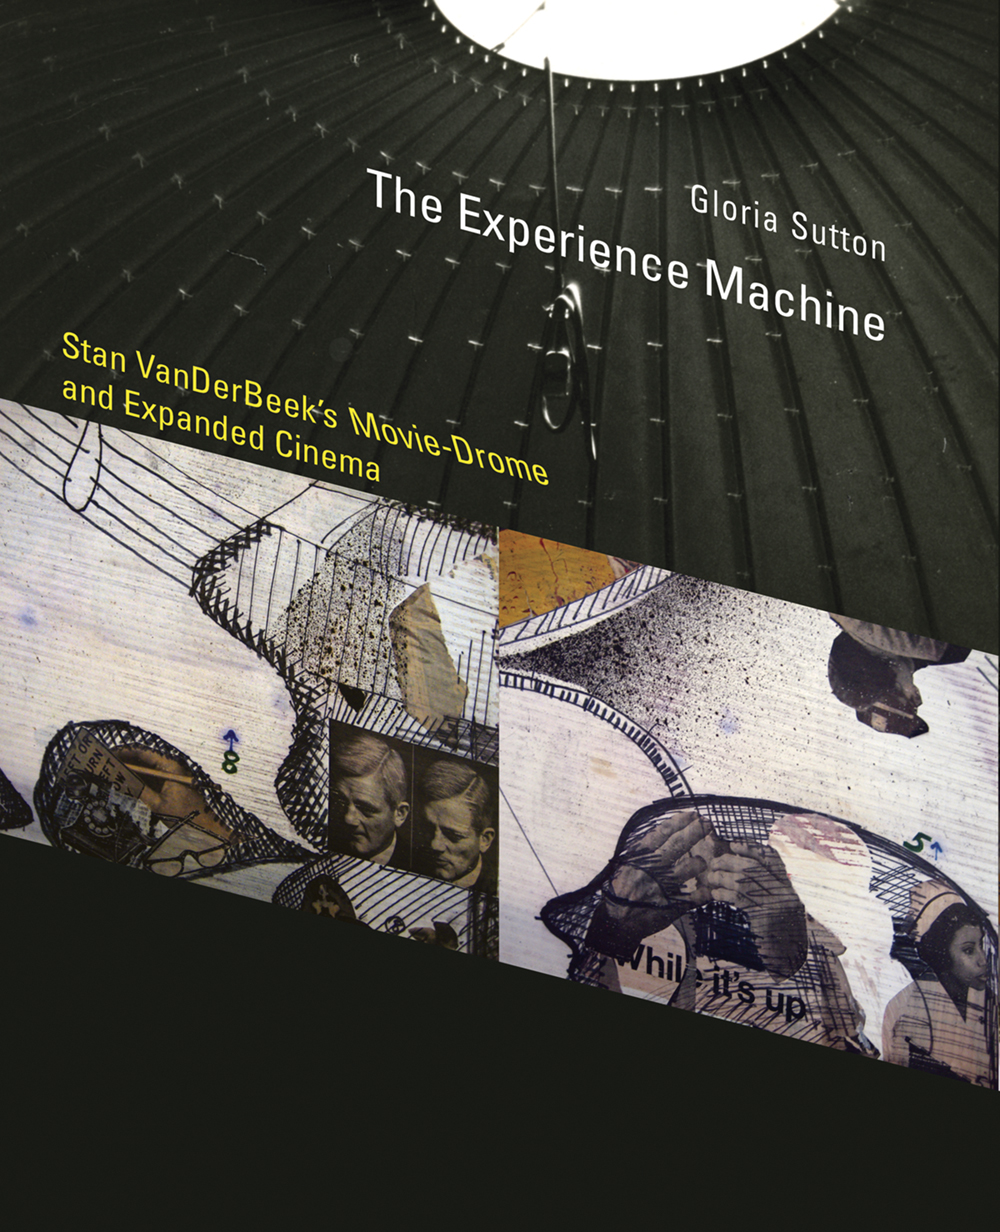 Buy The Experience Machine: Stan Vanderbeek's Movie-Drome and Expanded Cinema